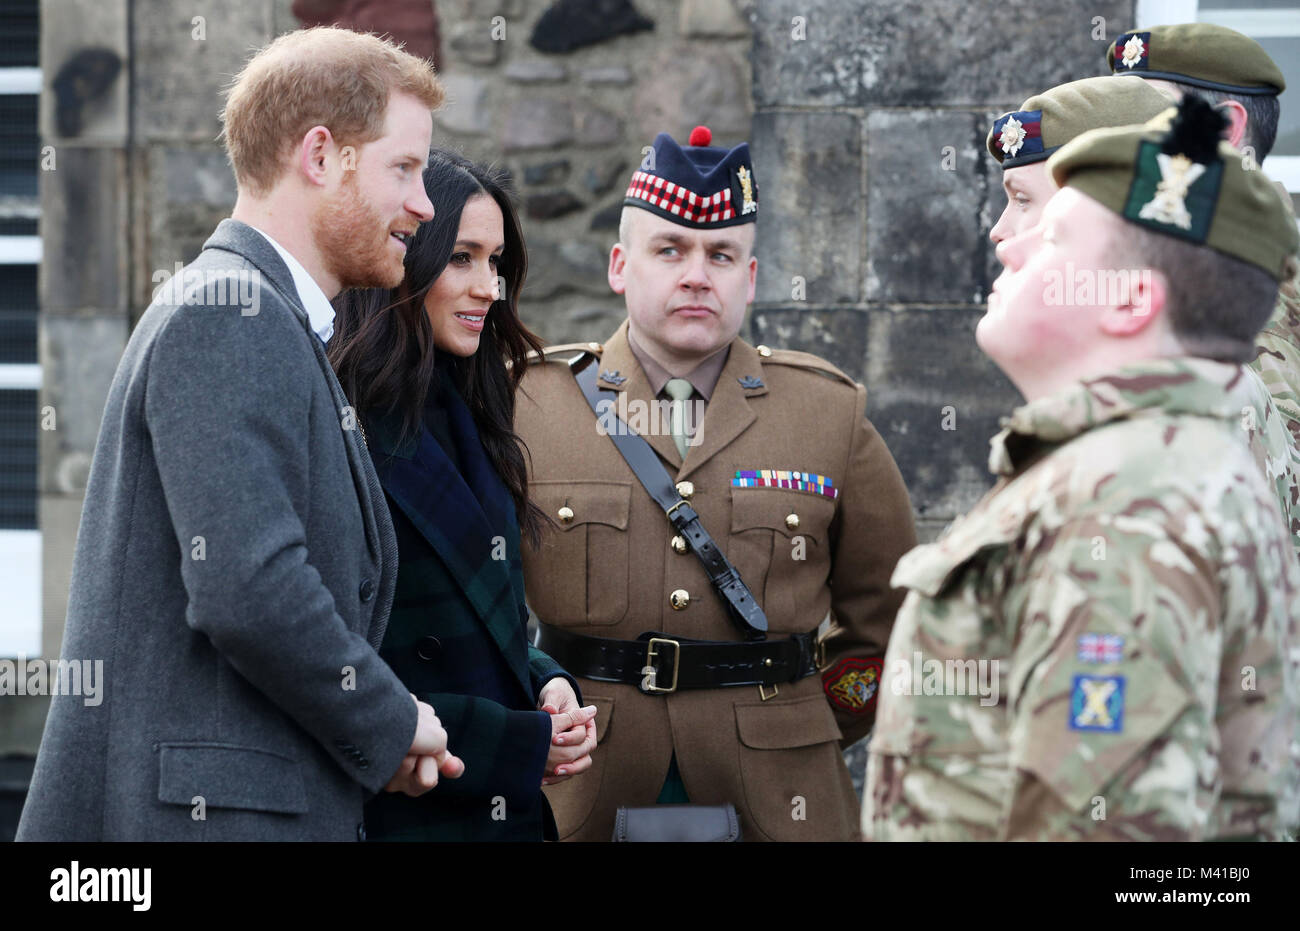 Prince Harry And Meghan Markle Meet The Gunners Before The Firing Of